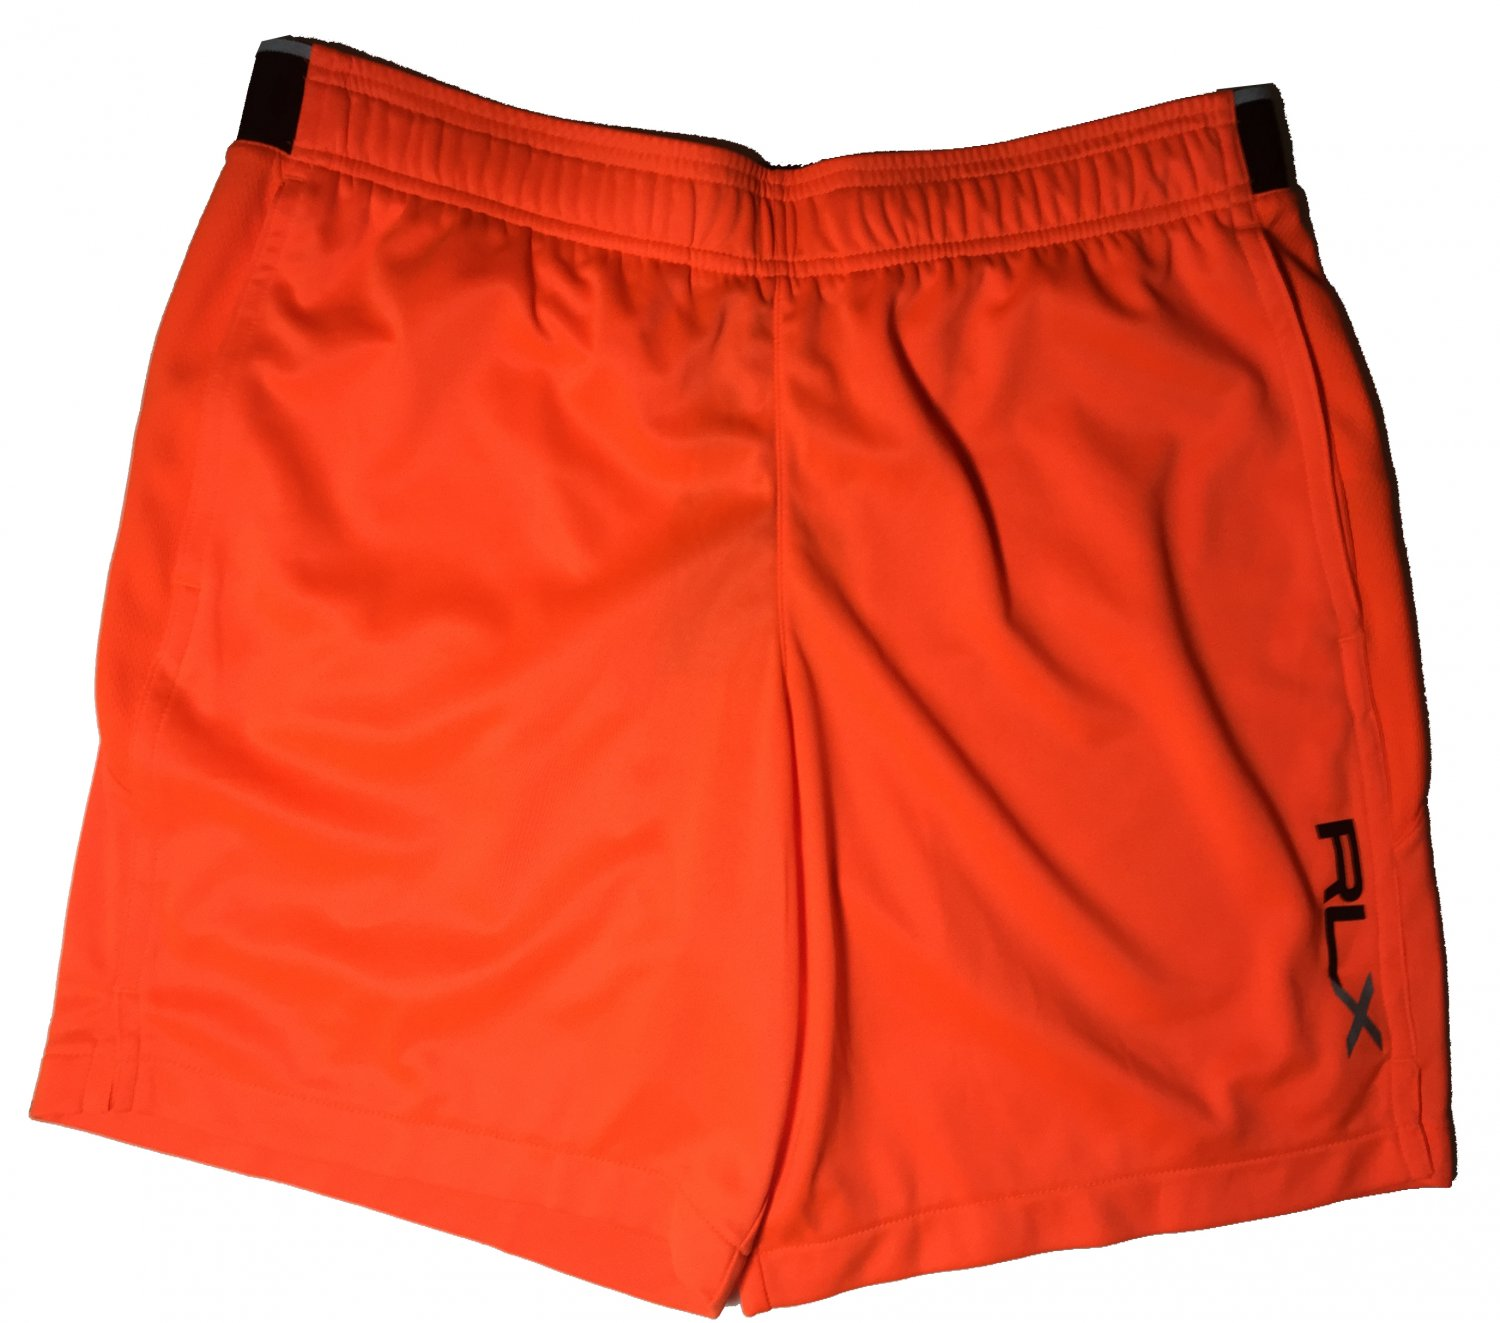 Men's M RLX Polo Ralph Lauren Orange Running City Tech Shorts